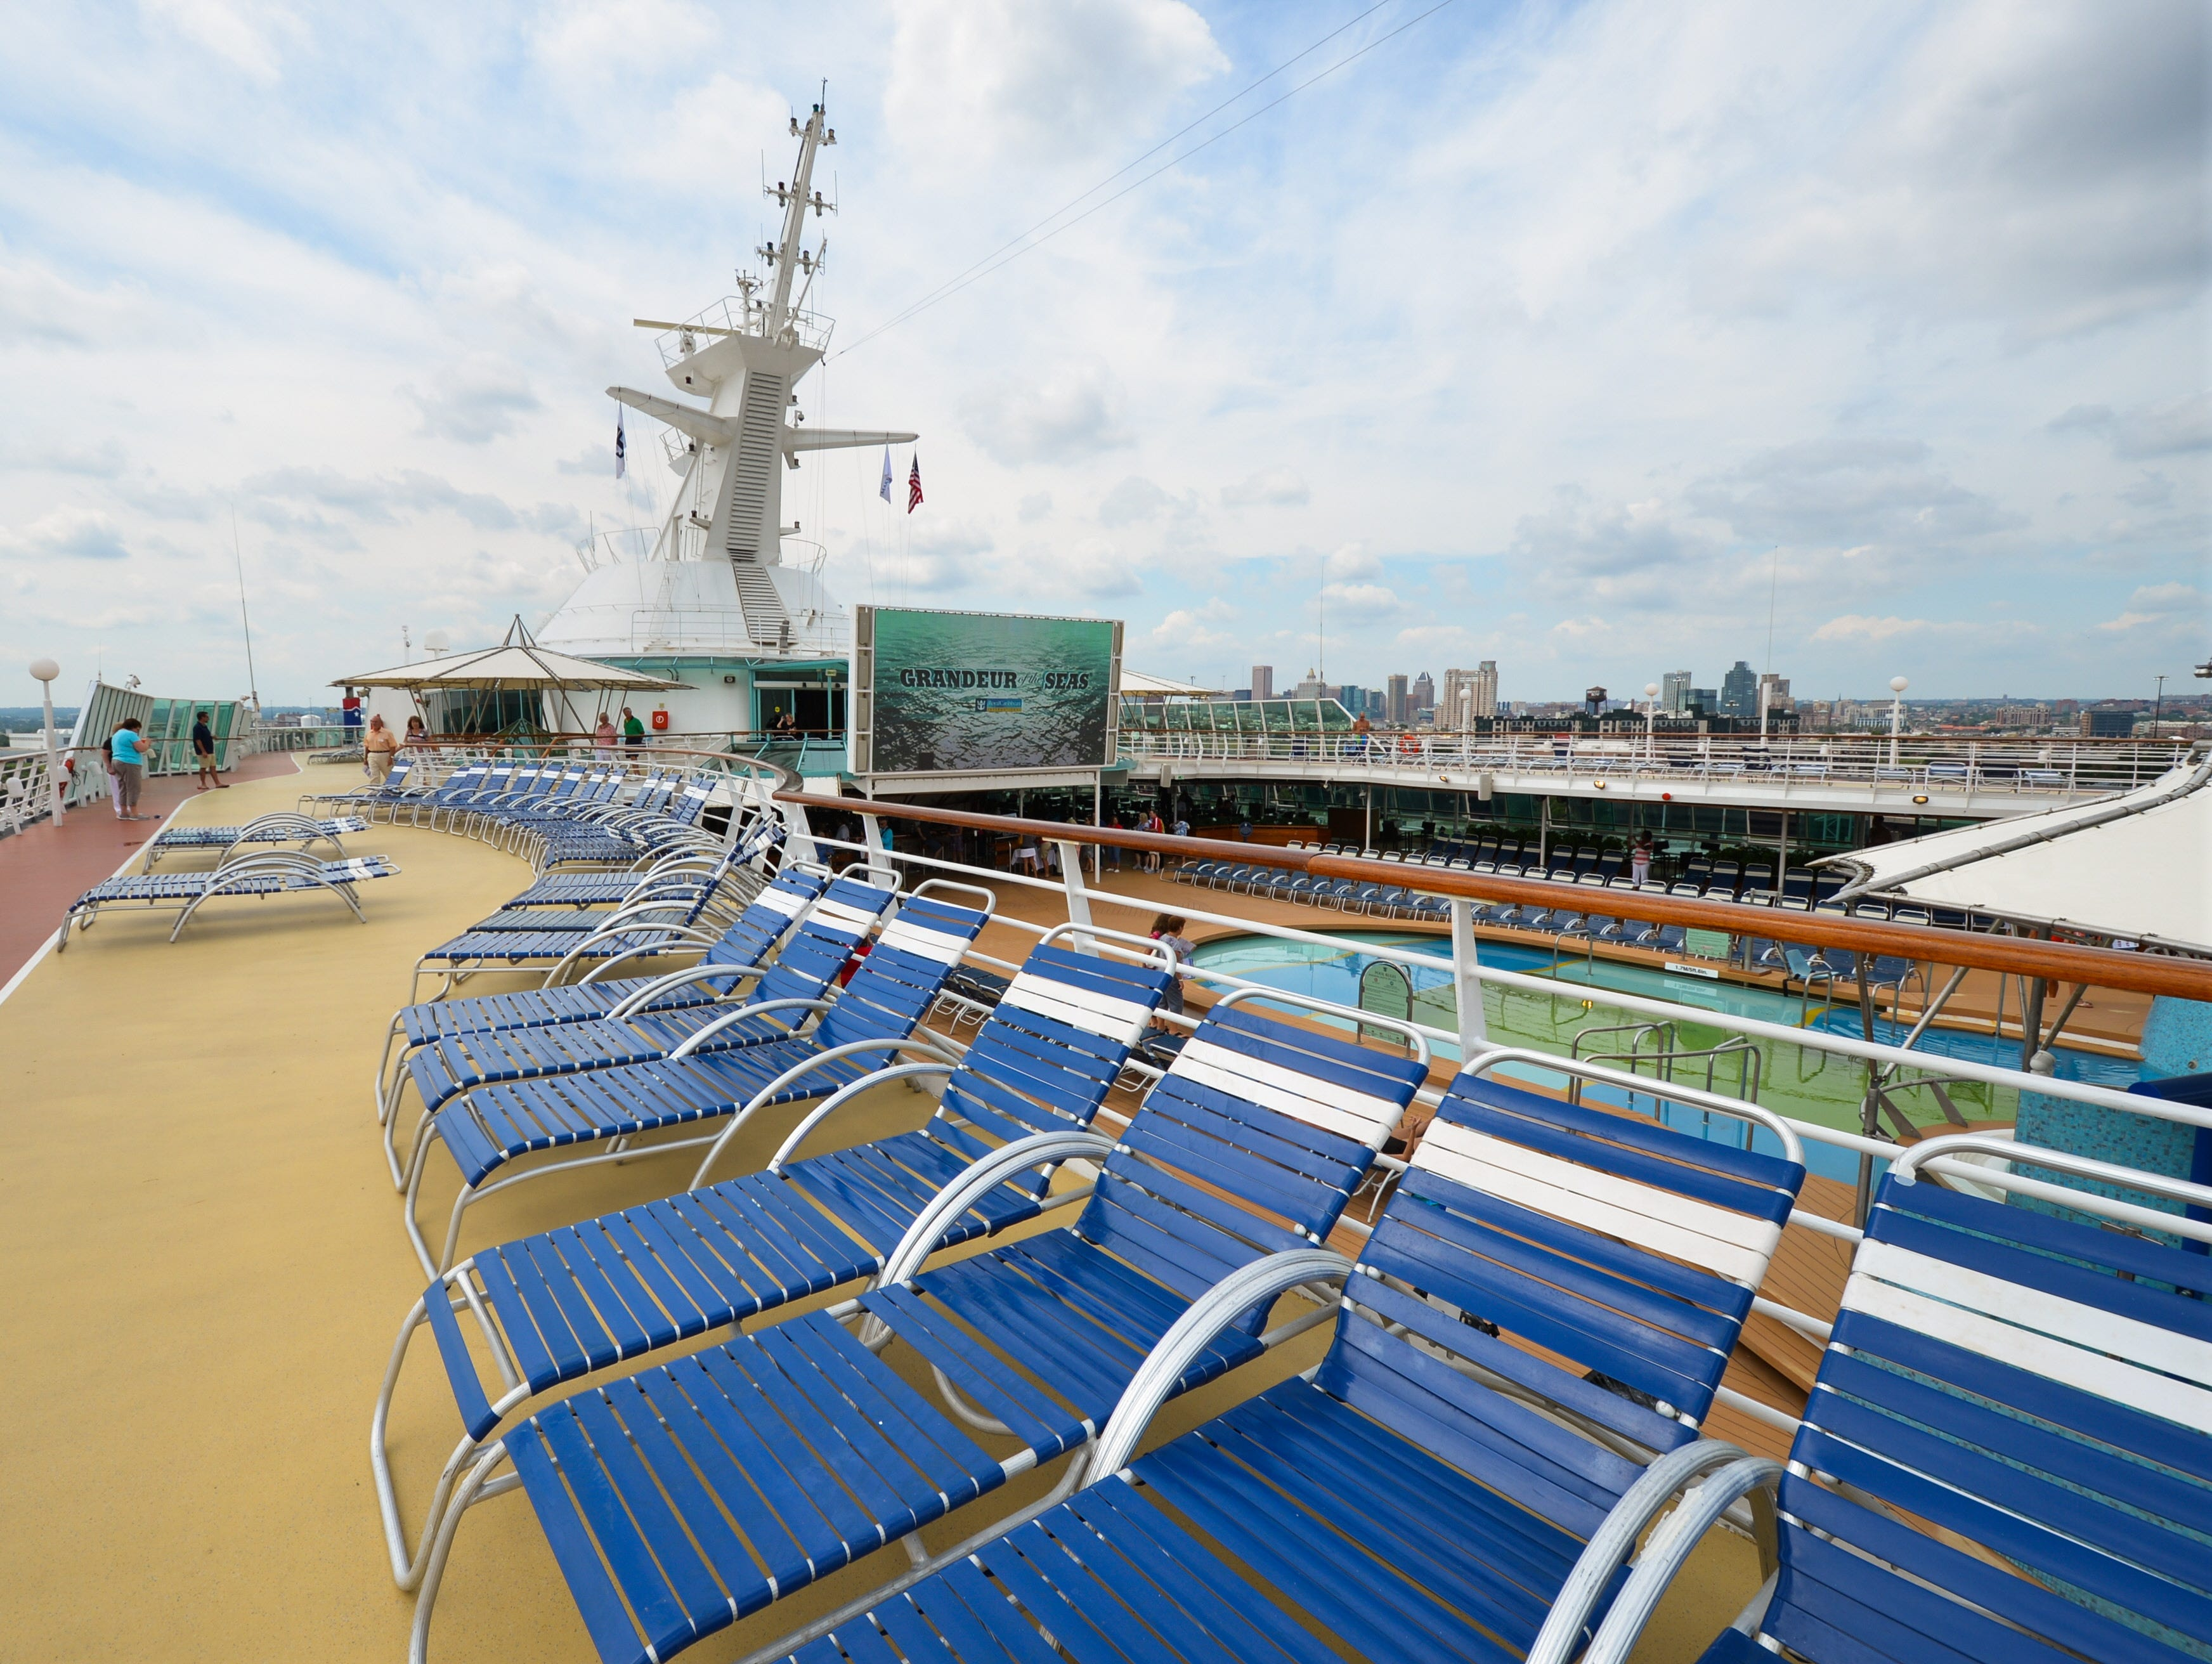 In addition to holding more deck chairs, Deck 10 doubles as a jogging track.